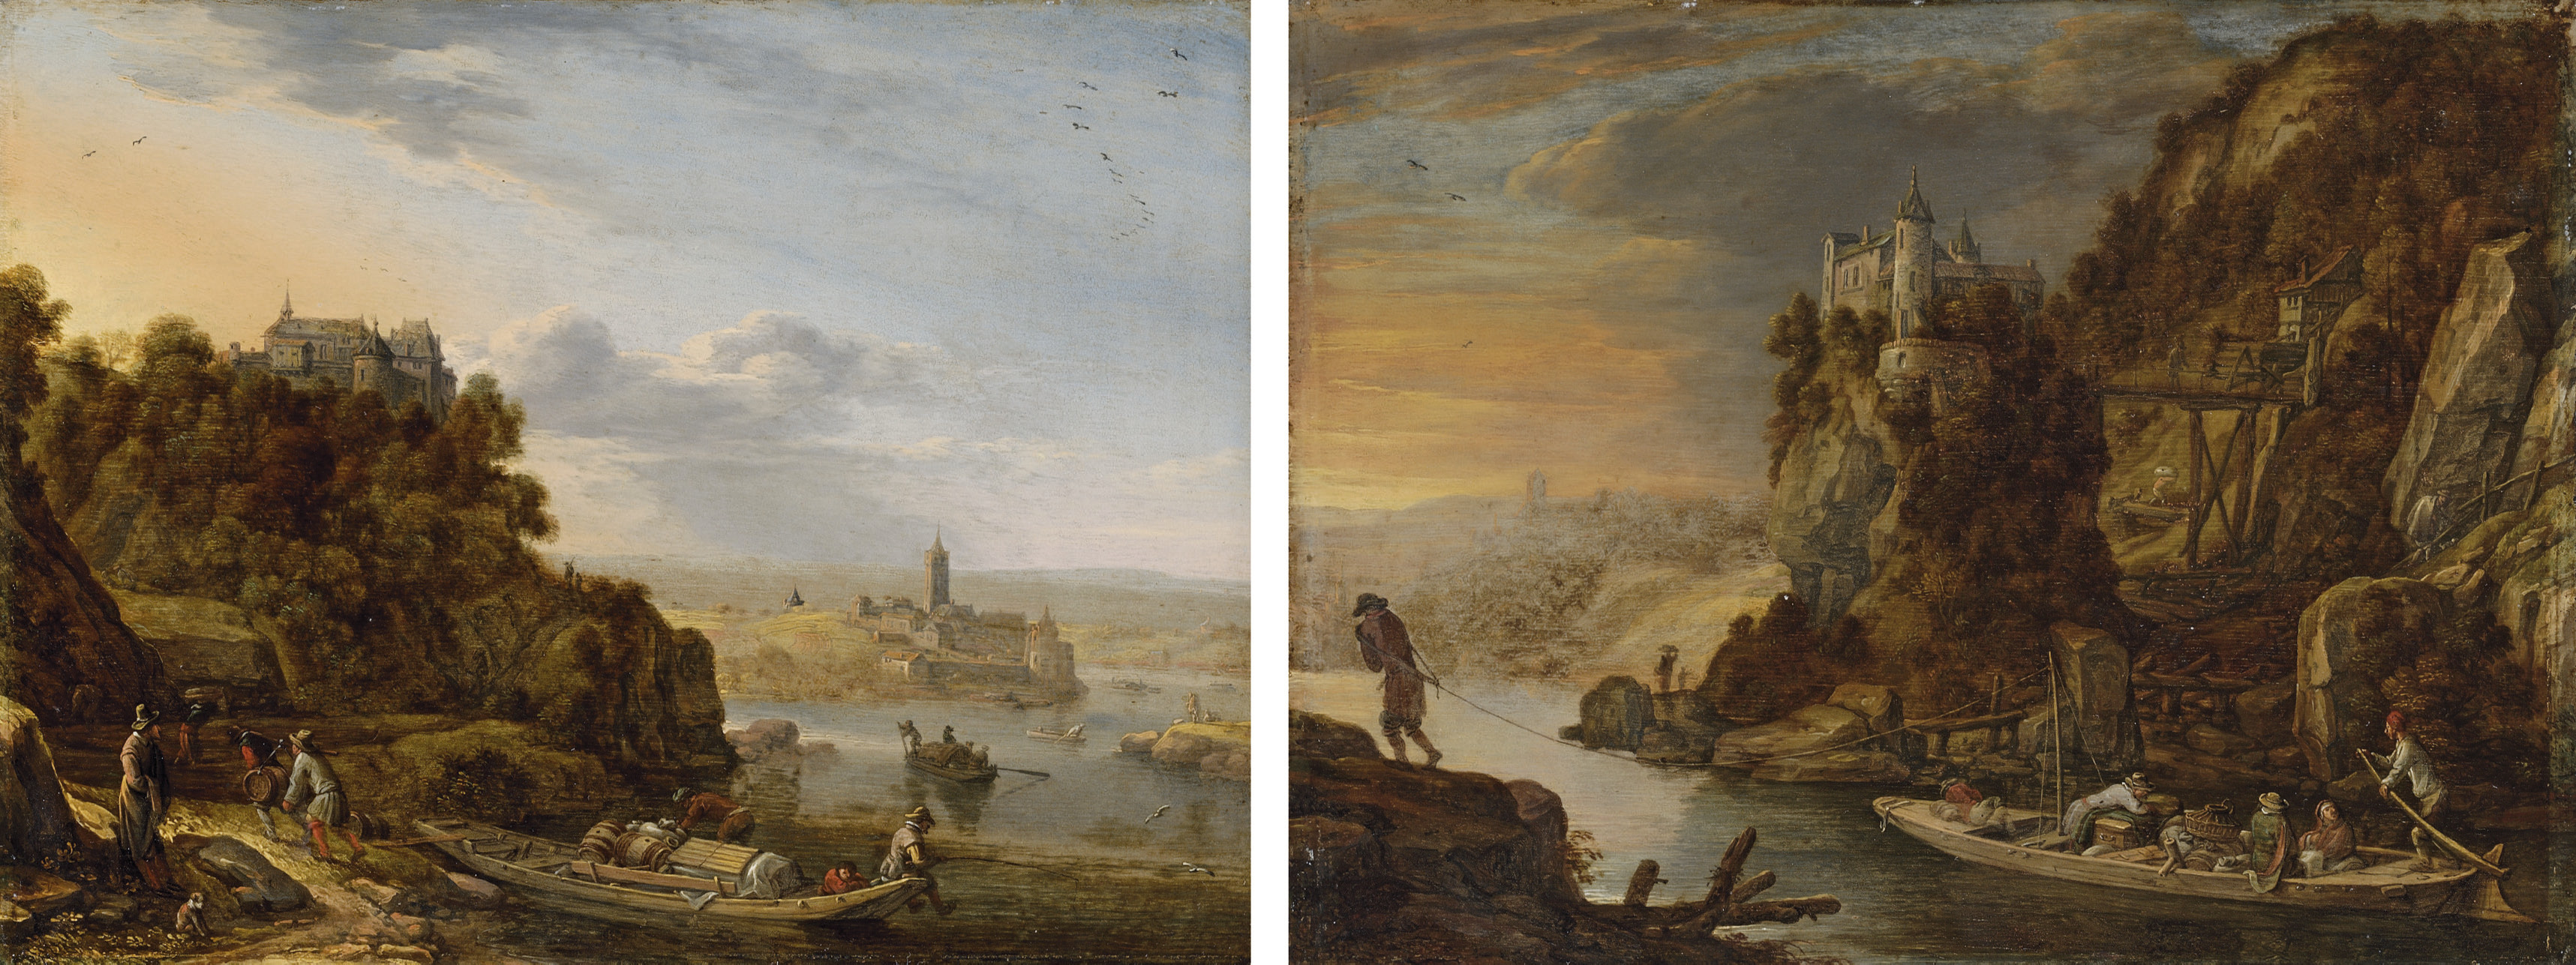 An extensive river landscape with figures fishing and unloading a boat, a hilltop castle and a town beyond; and A river landscape with figures in a tow-barge, a hilltop castle beyond